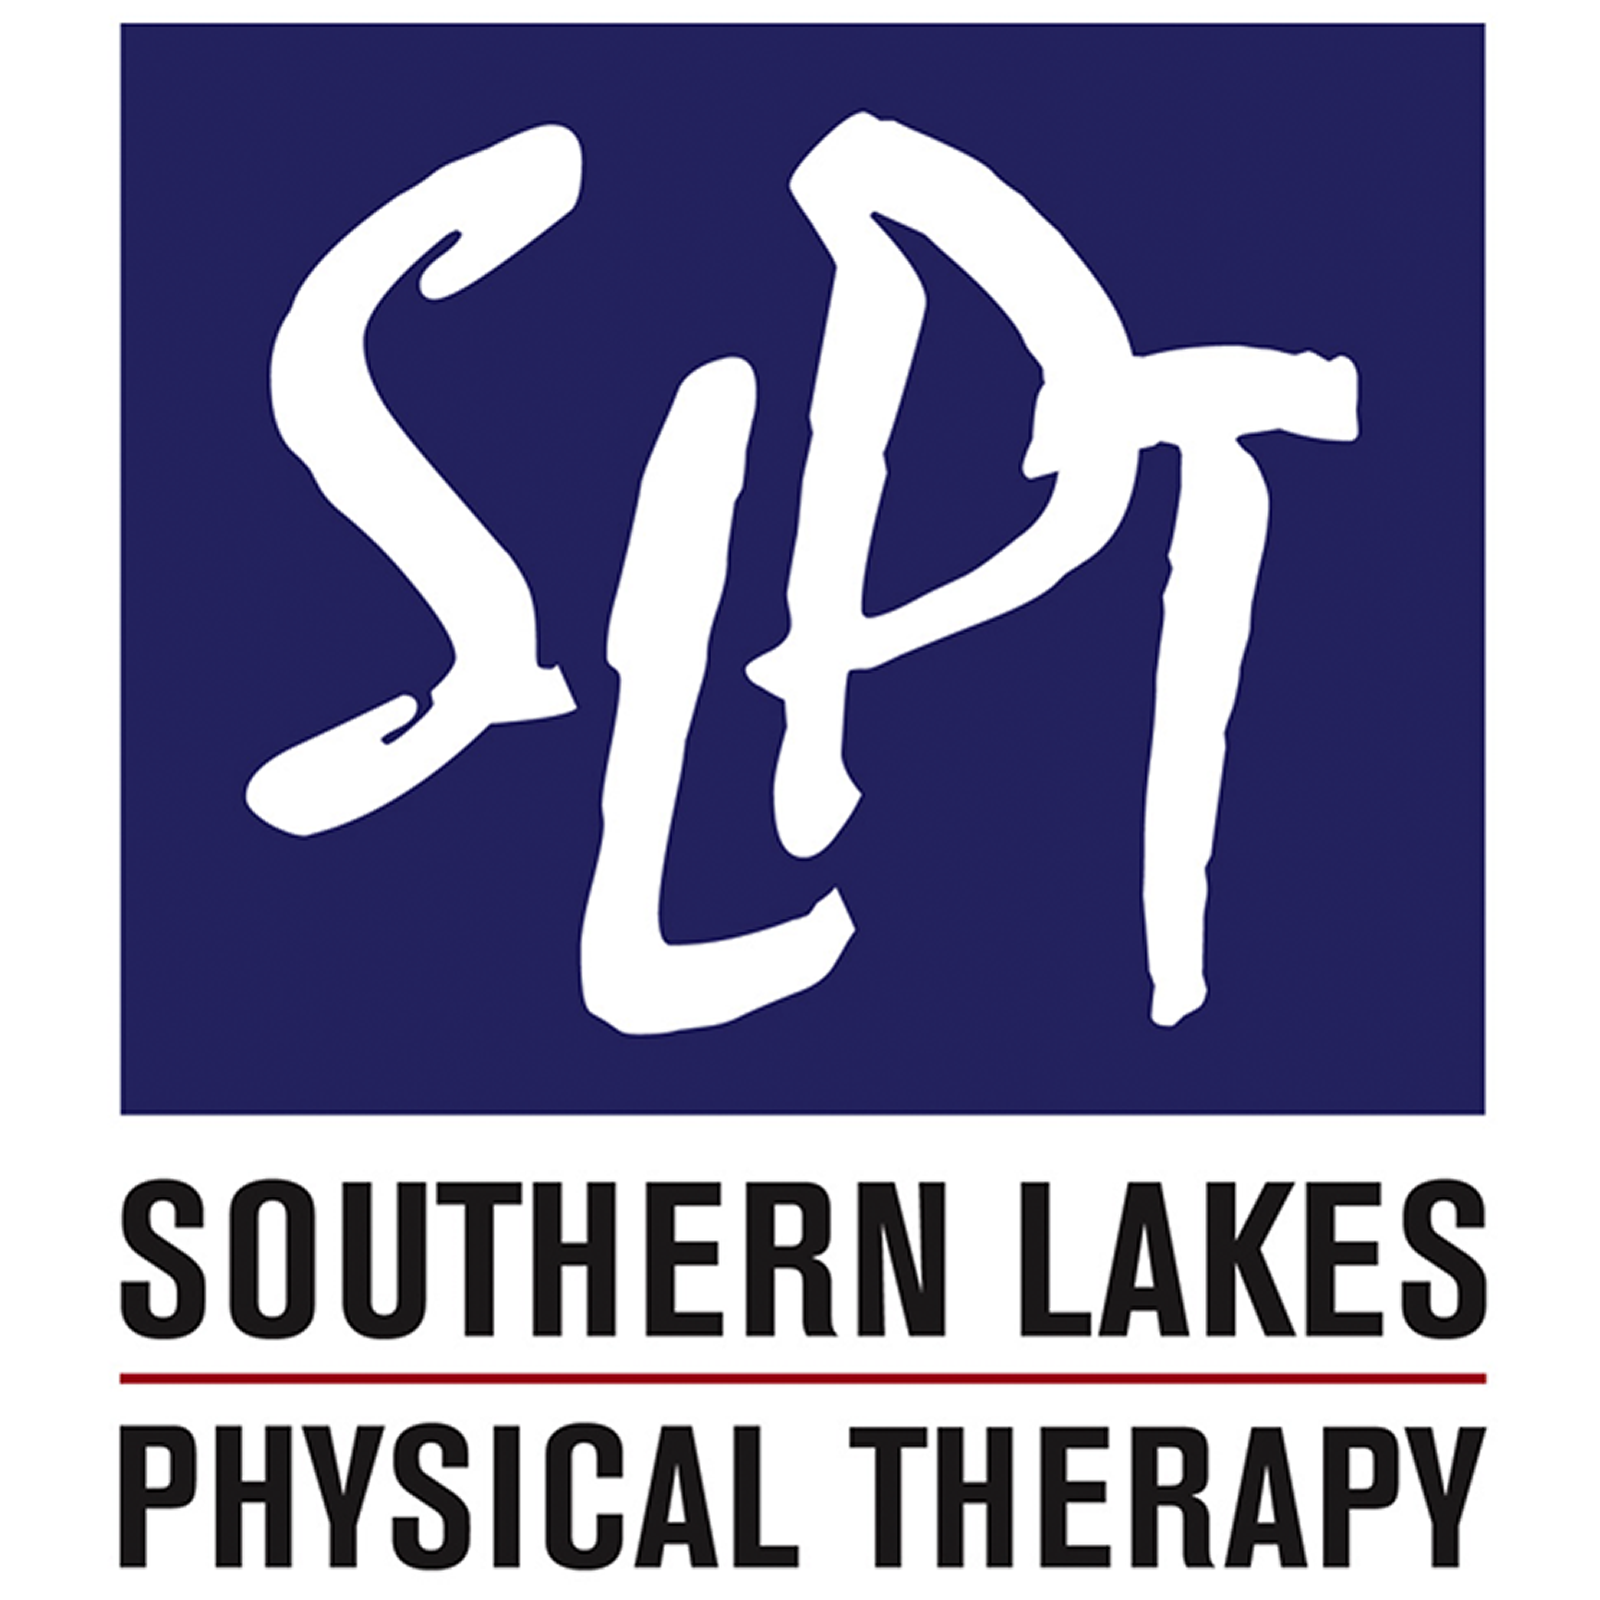 Southern Lakes Physical Therapy - Milwaukee, WI - Physical Therapy & Rehab